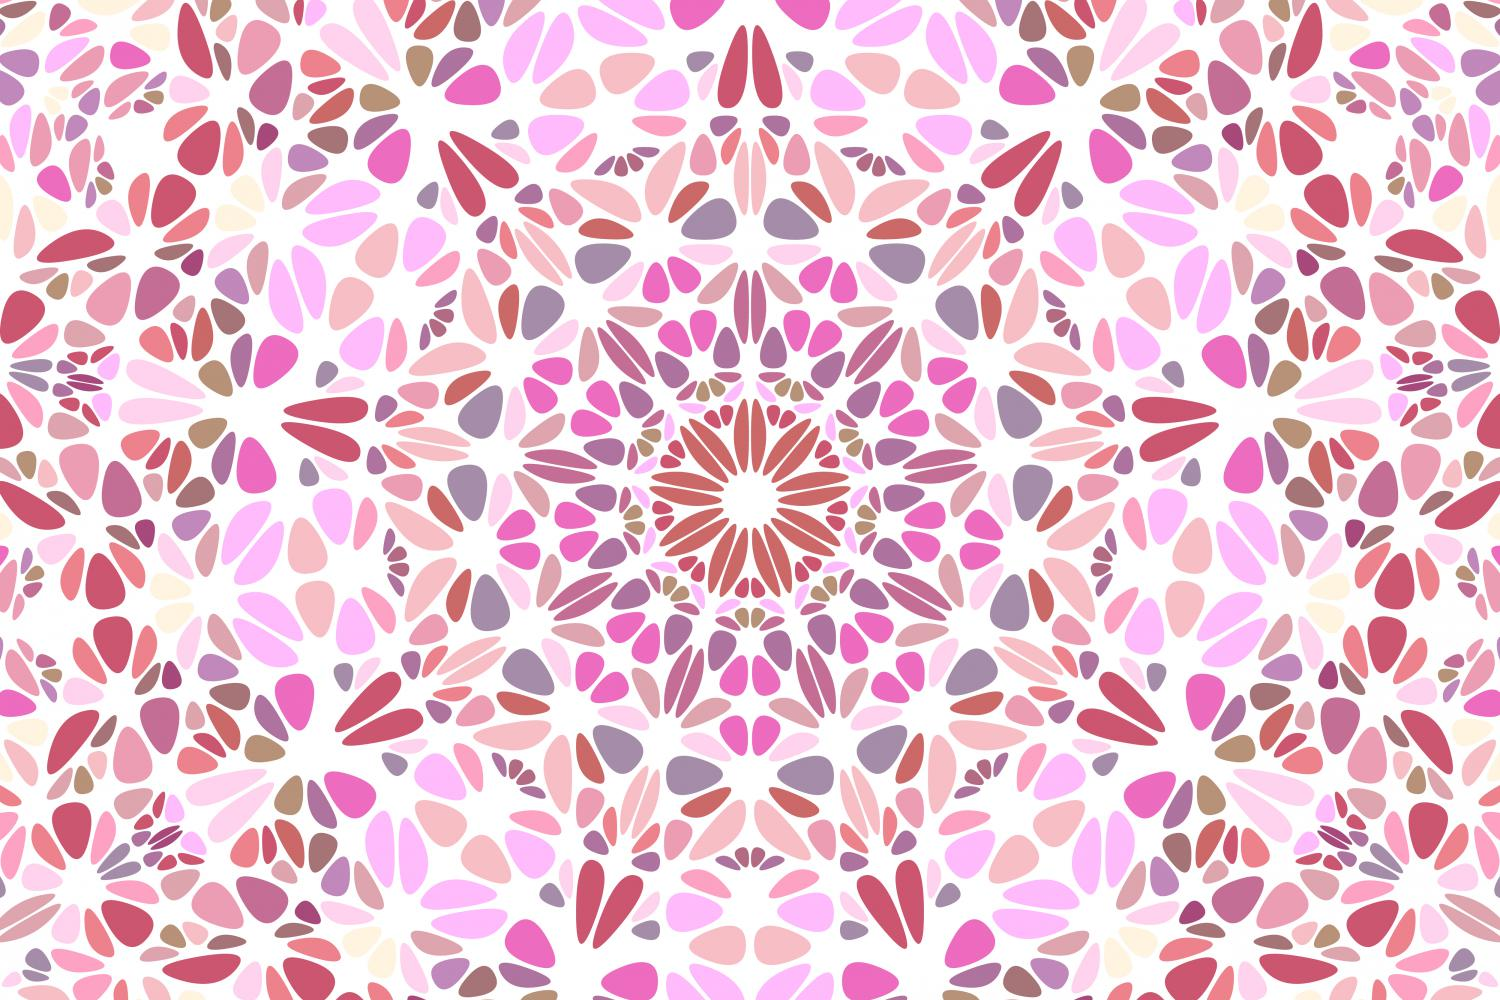 48 Floral Mandala Backgrounds example image 5